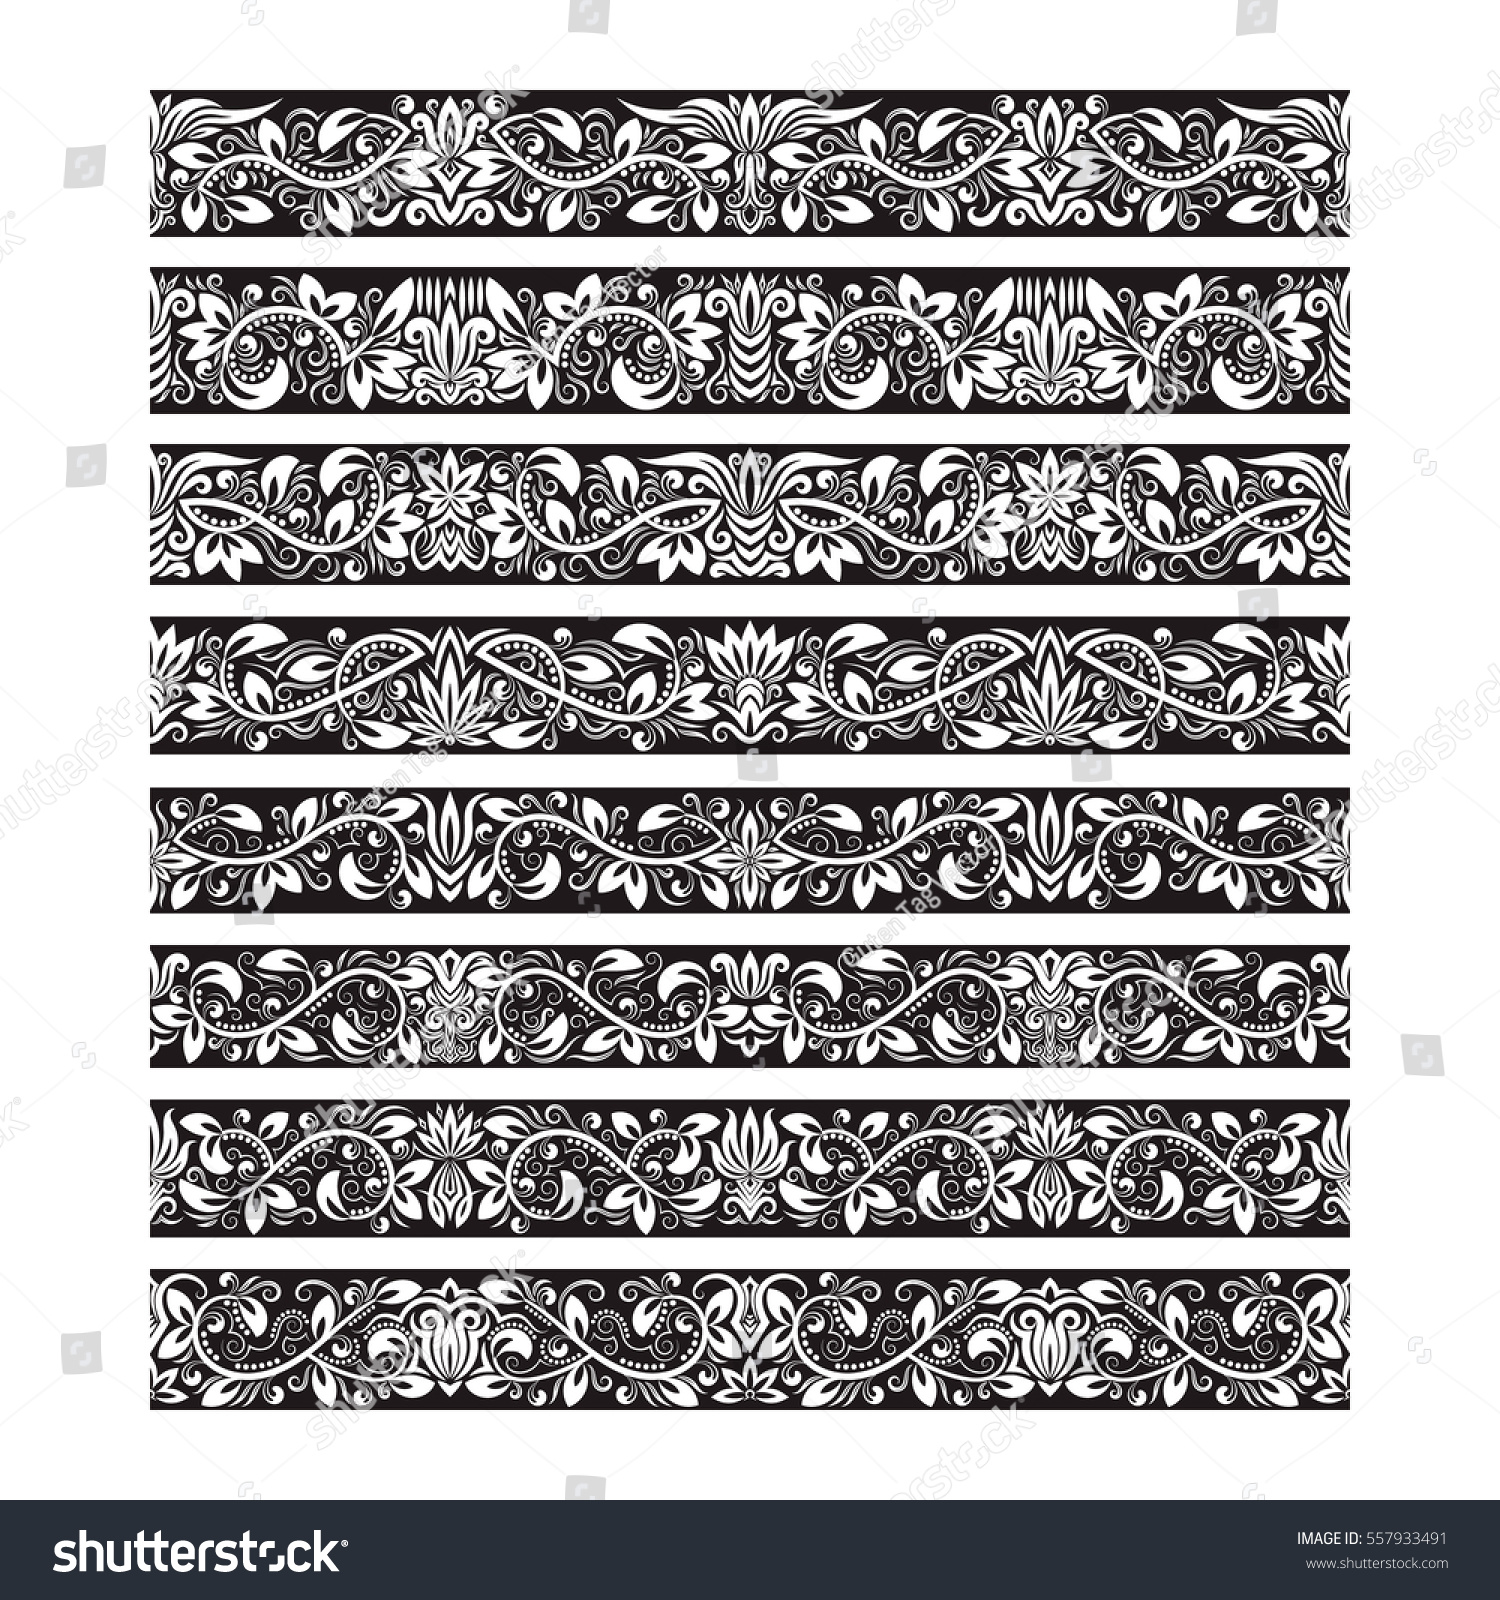 black white vintage elements for vector brushes creating borders templates kit for frames design and - White Vintage Picture Frames